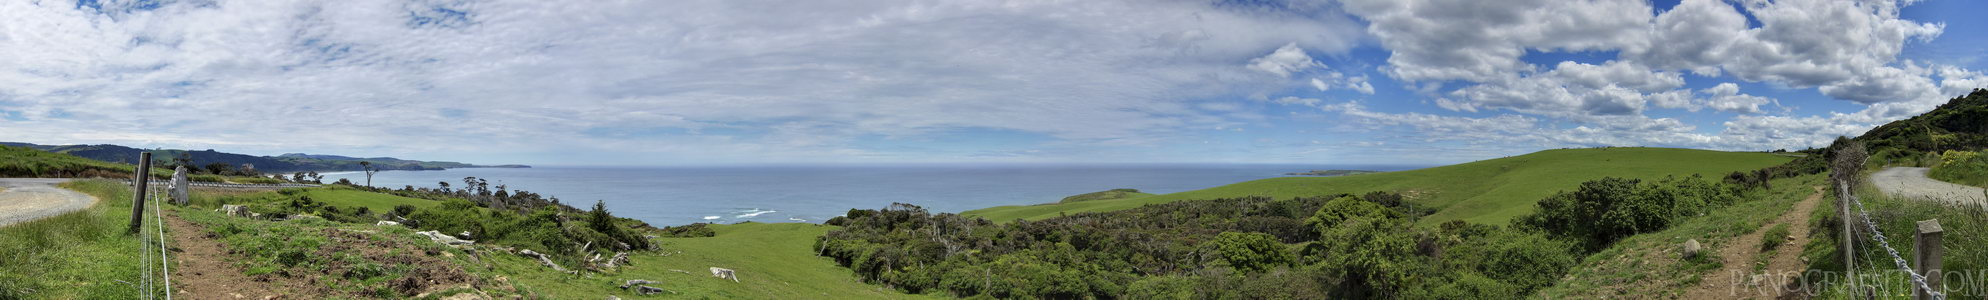 Florence Hill HDR - The coast line from Florence Hill Lookout in the Catlins